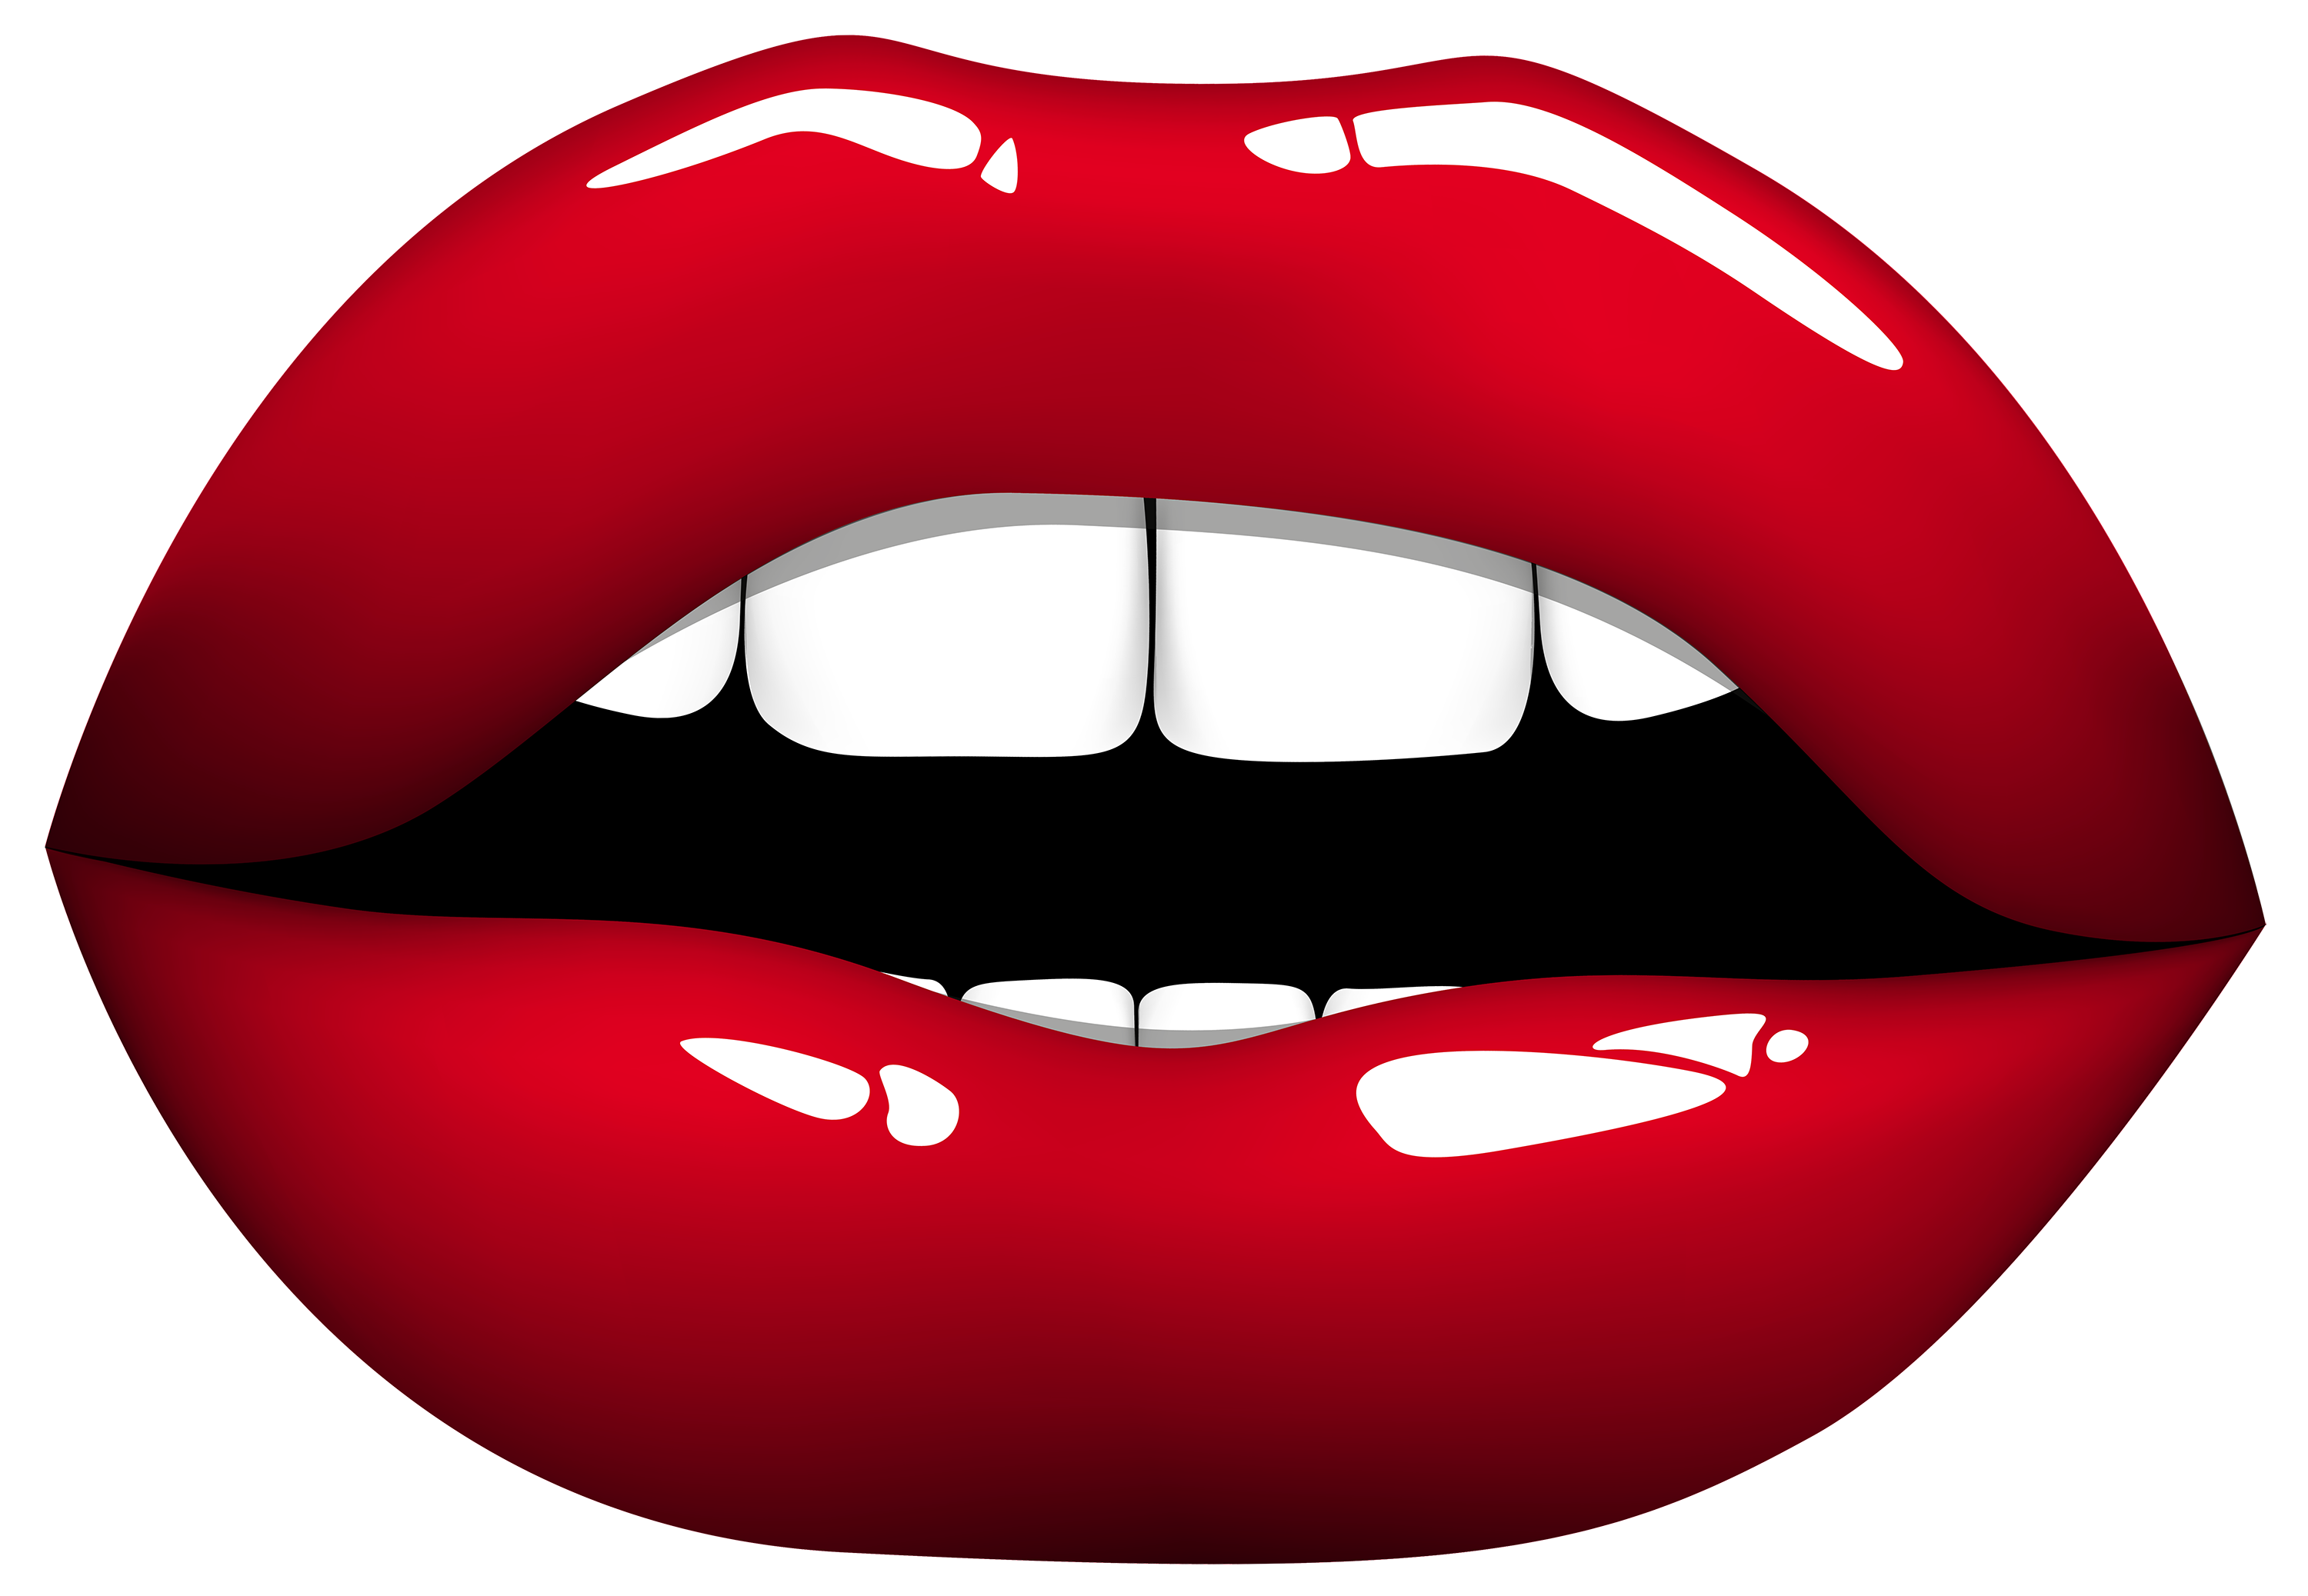 Plate png lip pictures oral motor best web color pencil art